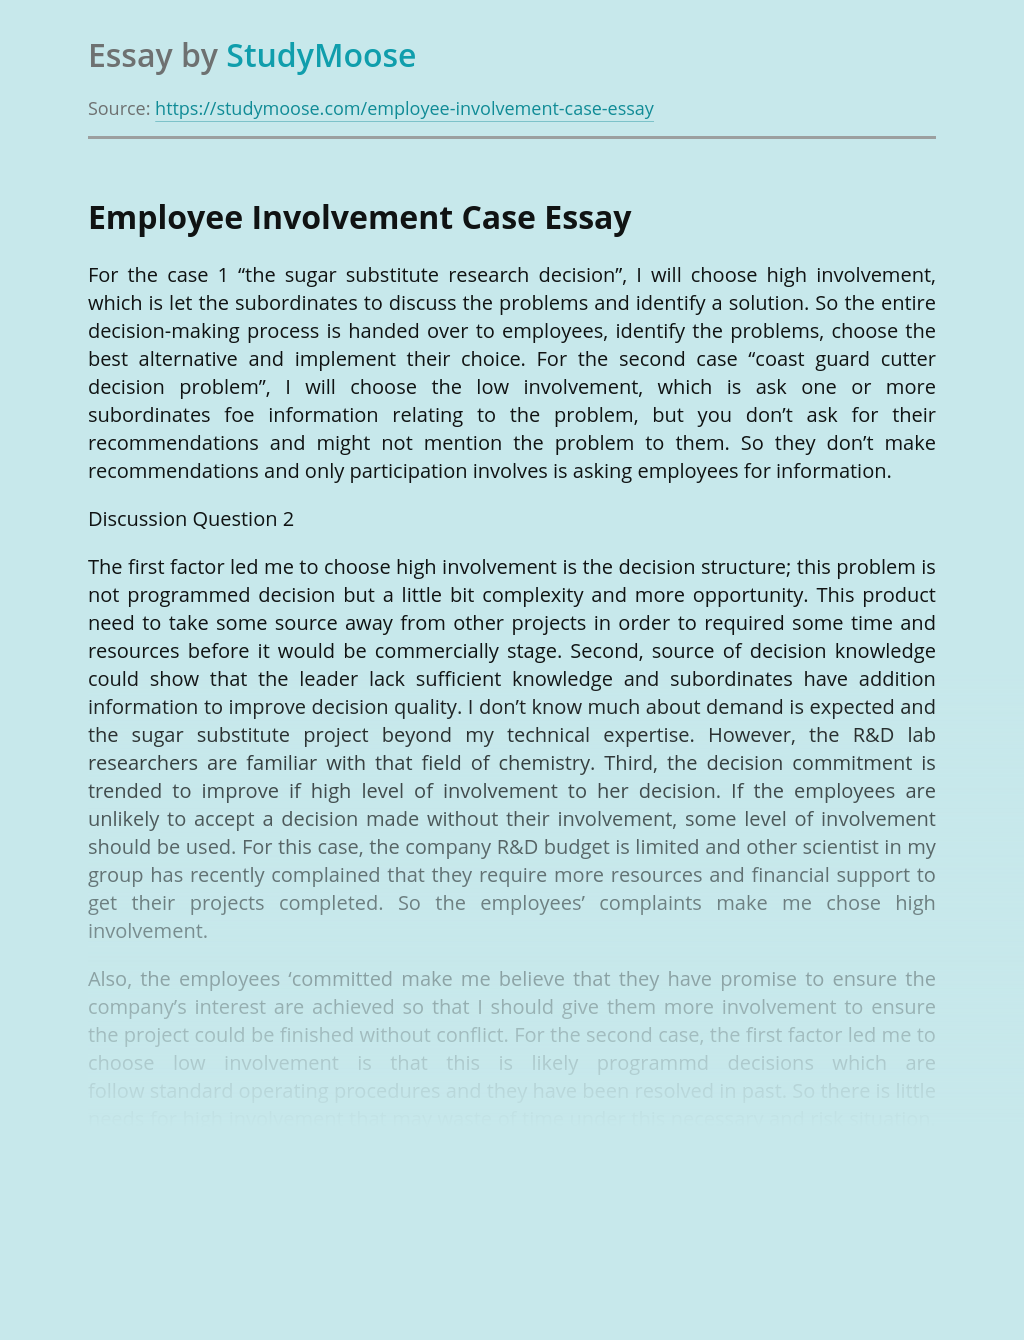 Employee Involvement And Decision Making